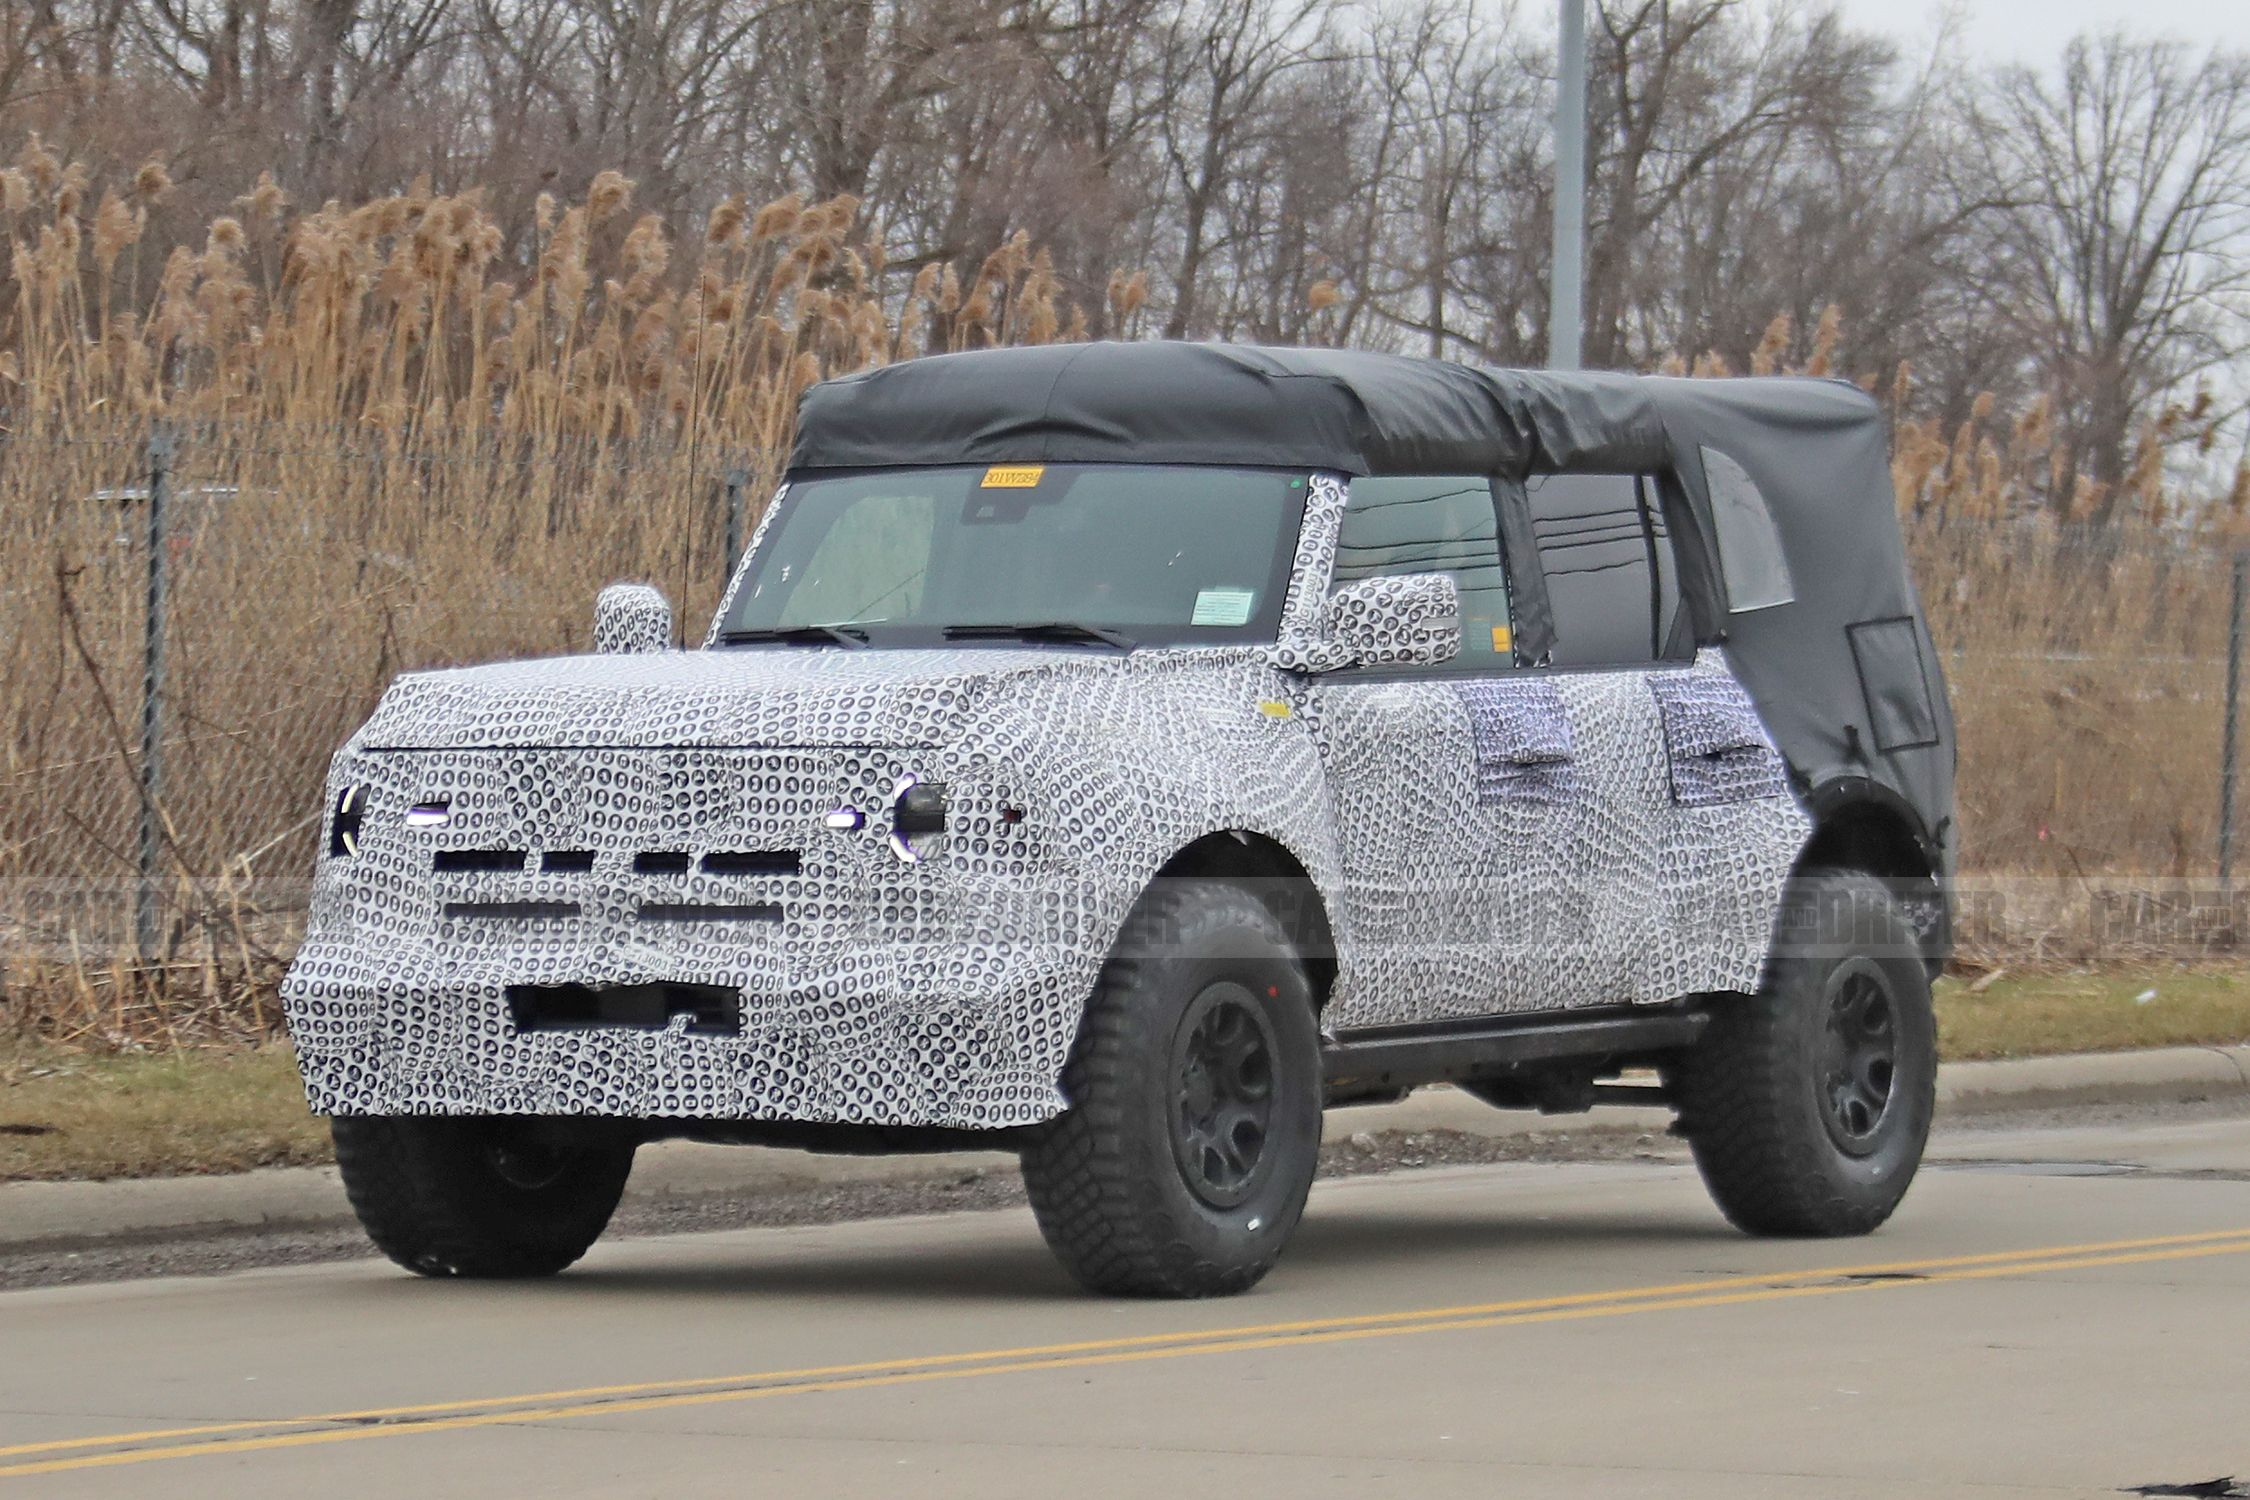 New 2021 Ford Bronco Photos Show Off-Road Kit